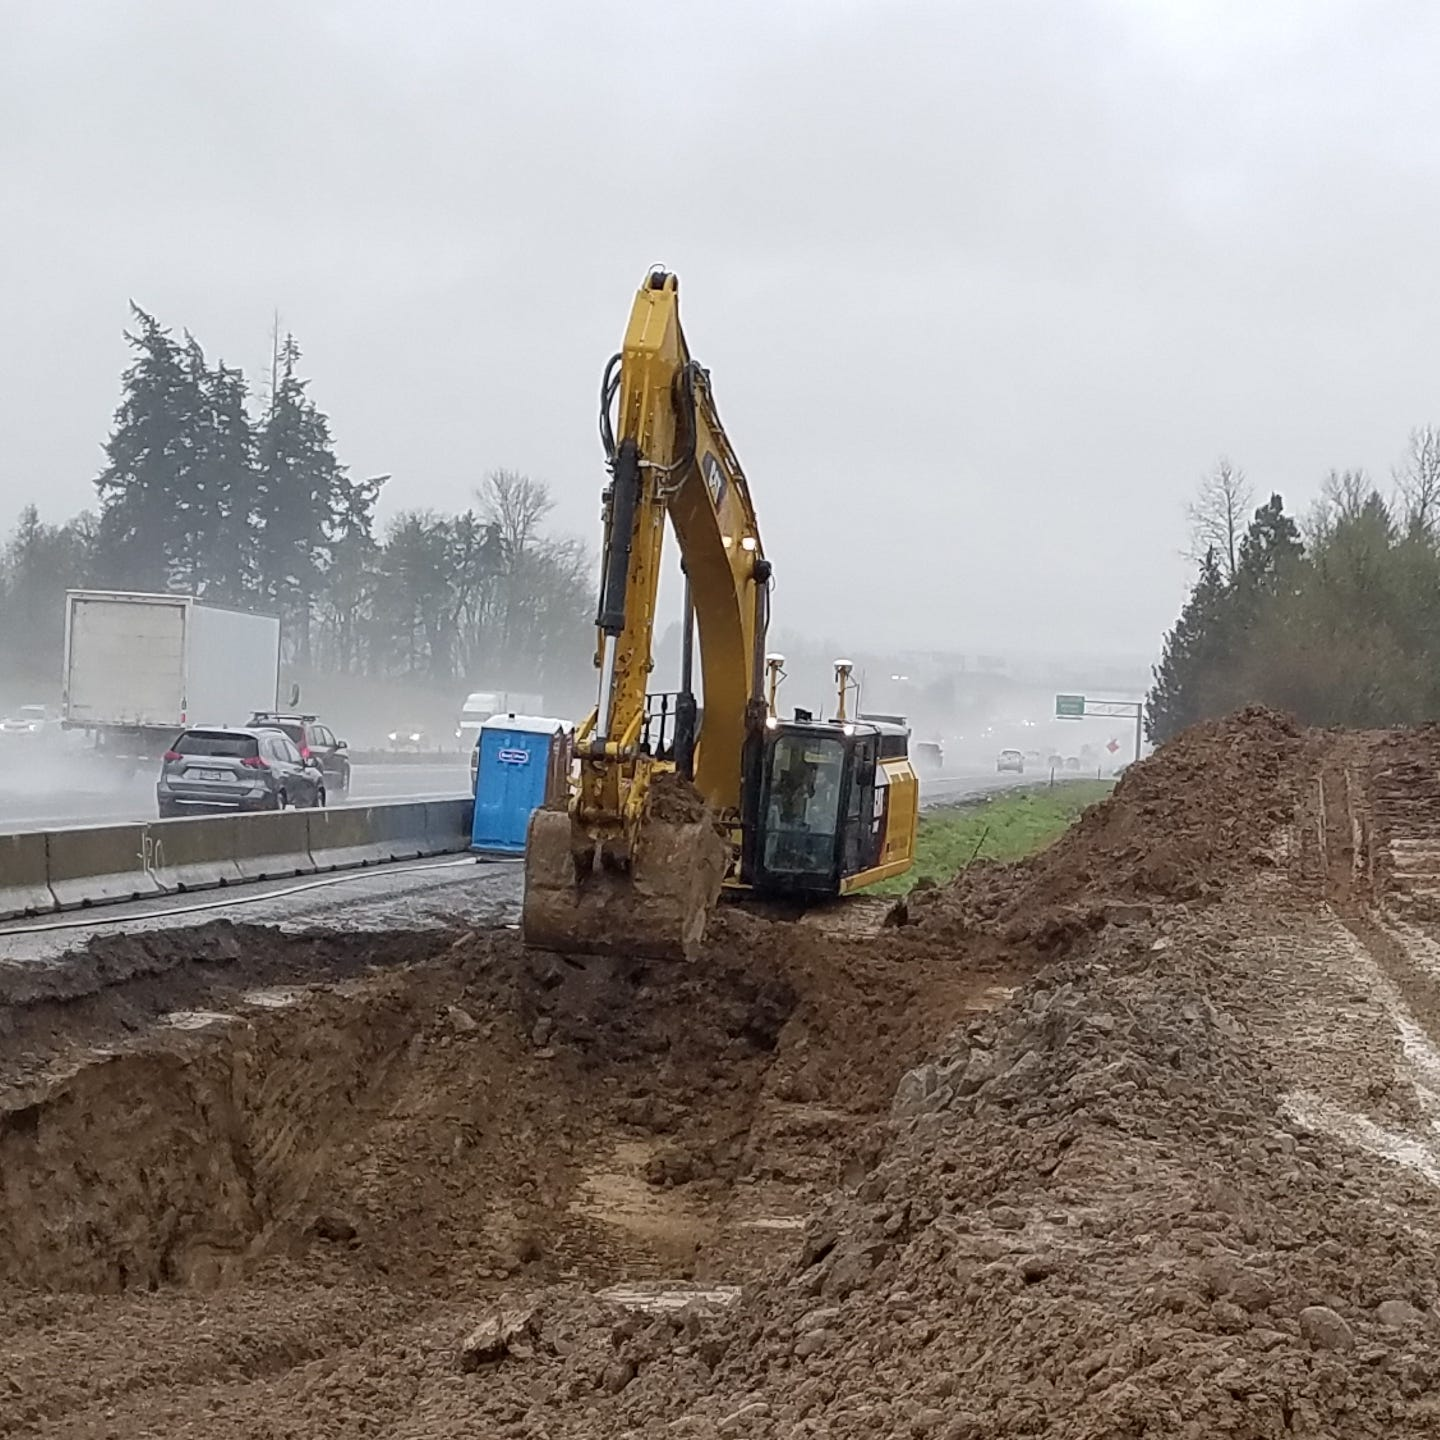 Contaminated soil hauled from tanker crash site on I-5 near Keizer